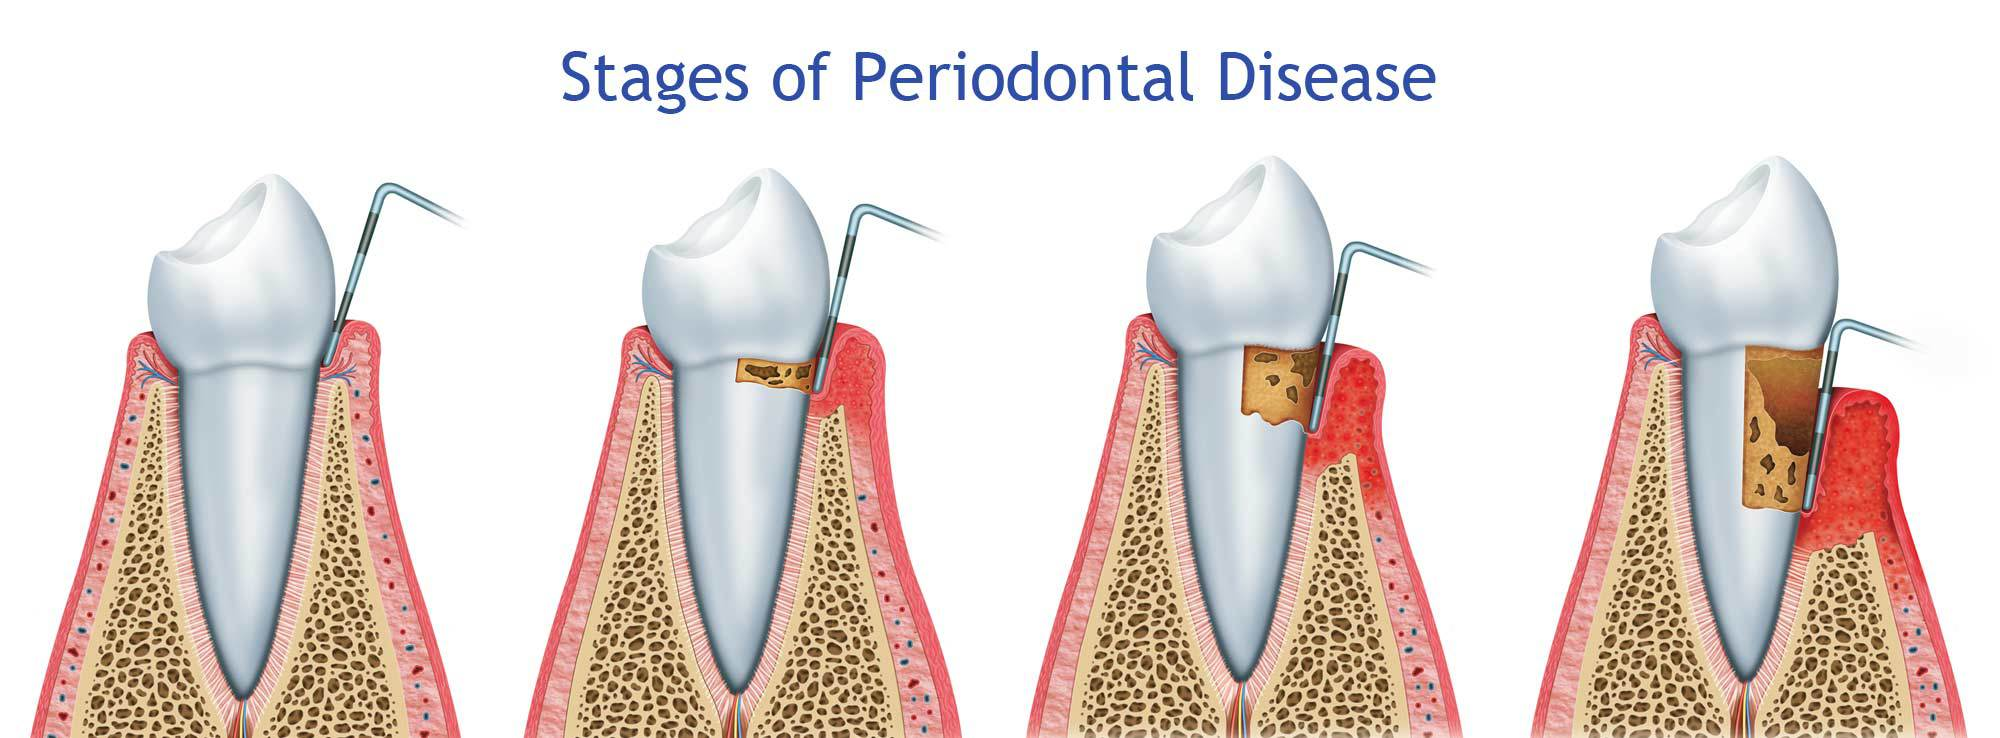 Periodontal Disease Treatment by Nassau County Periodontist Dr. Marichia Attalla